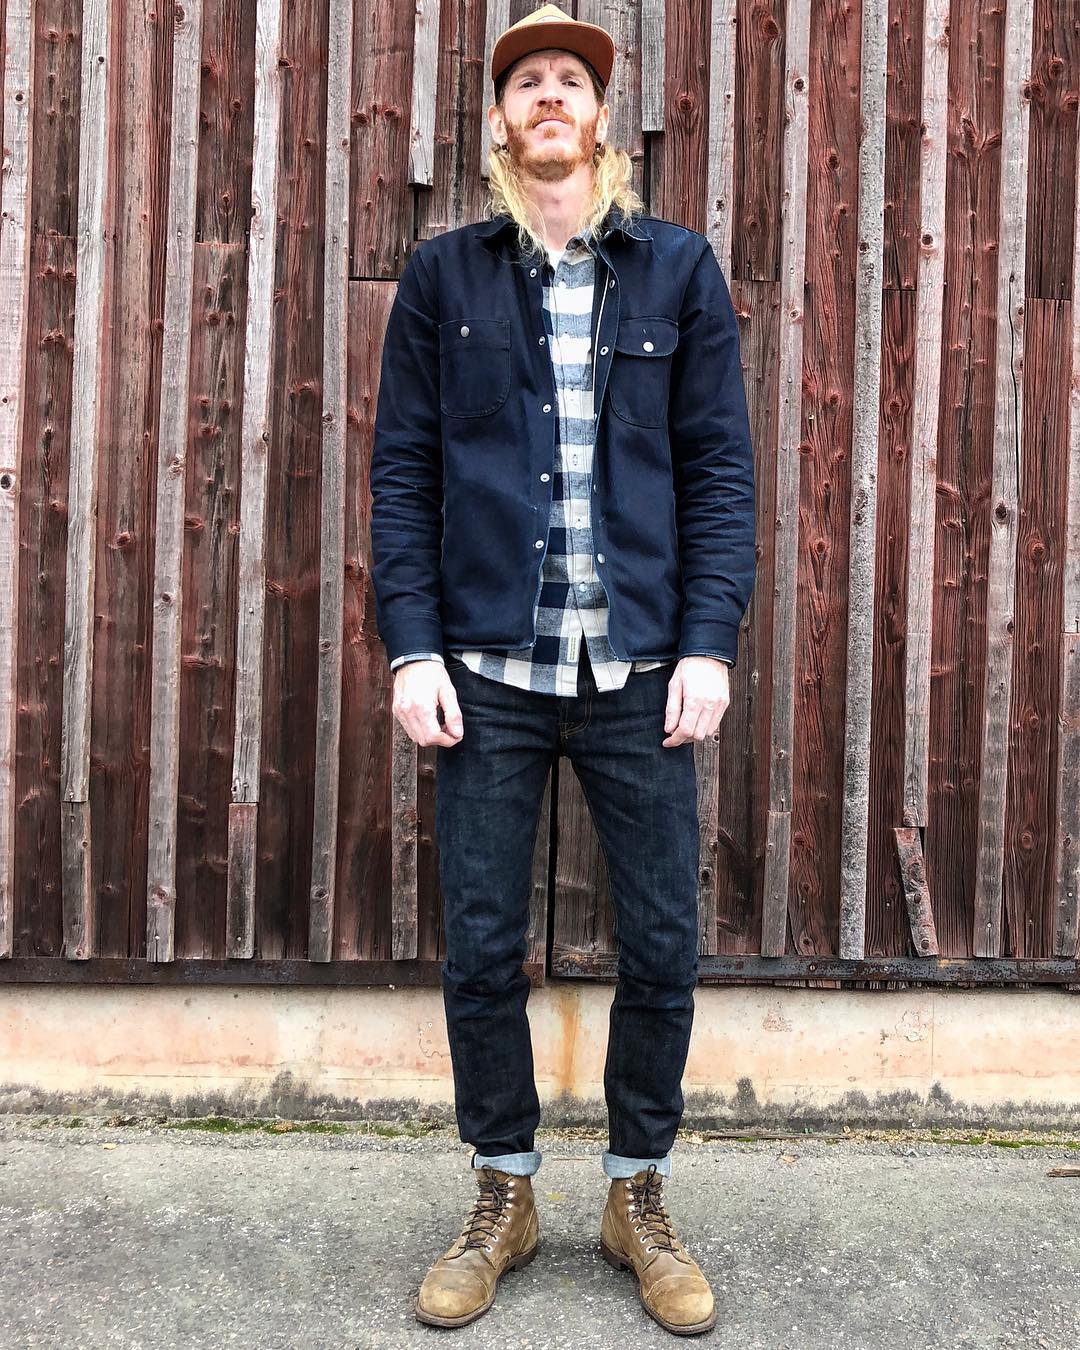 Must-follow Instagrammers, Denimhunters, raw denim, Swedish denim dudes, sennah0j